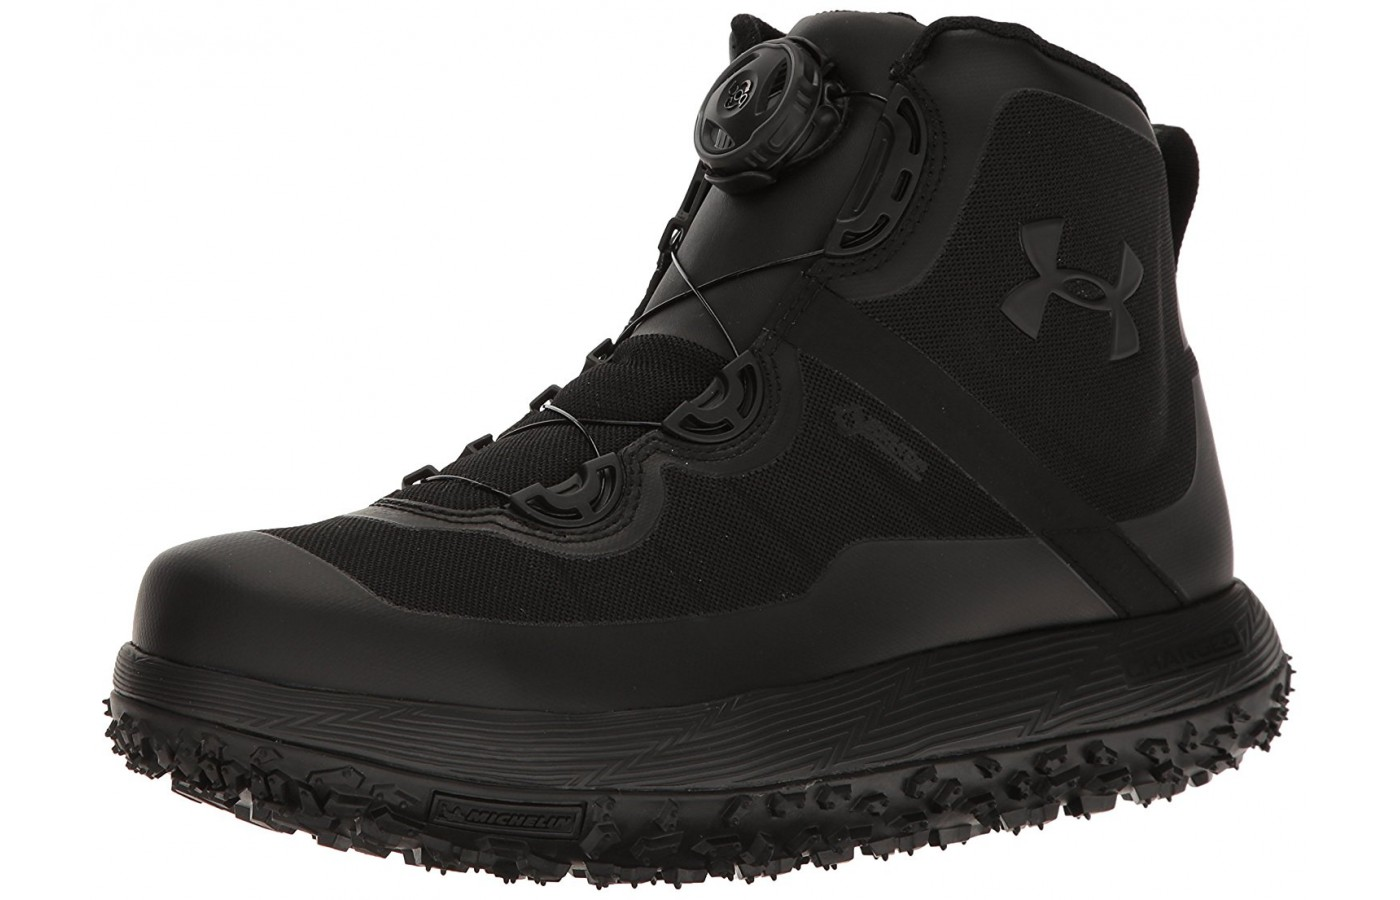 Under Armour Fat Tire GTX angled